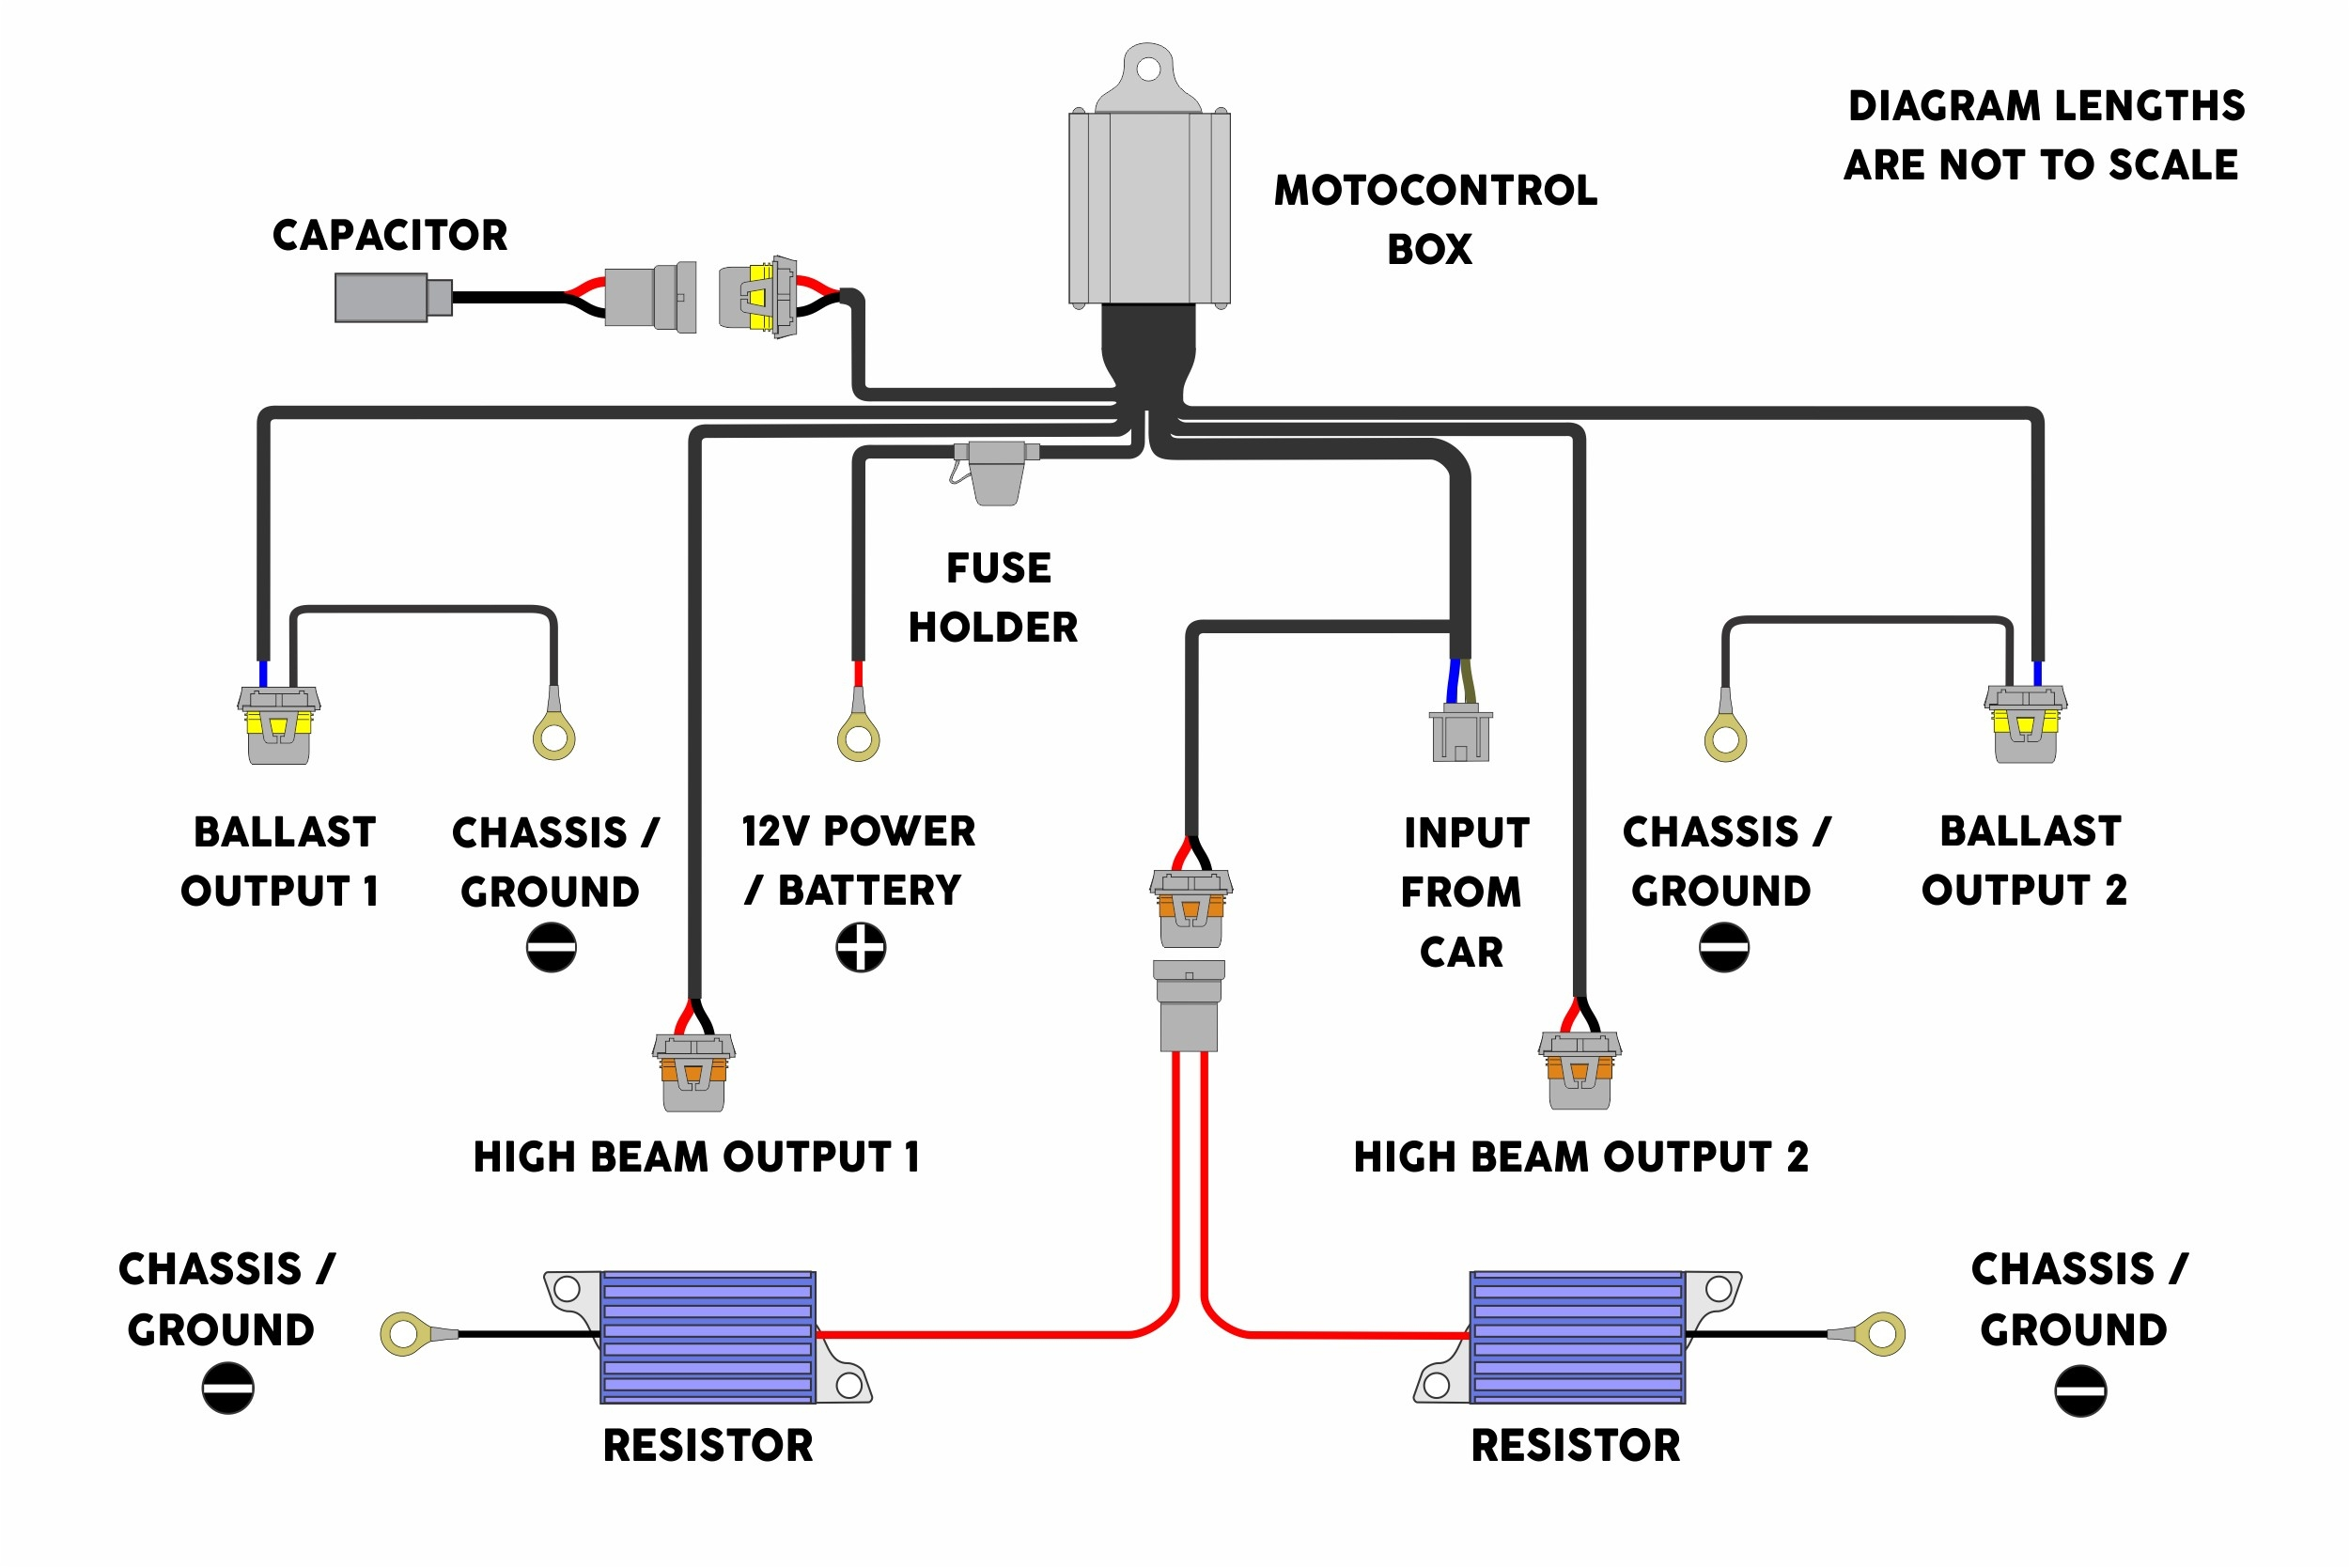 altronix relay wiring diagram Download-altronix rb5 wiring diagram Download Page 1 6 b 11-t